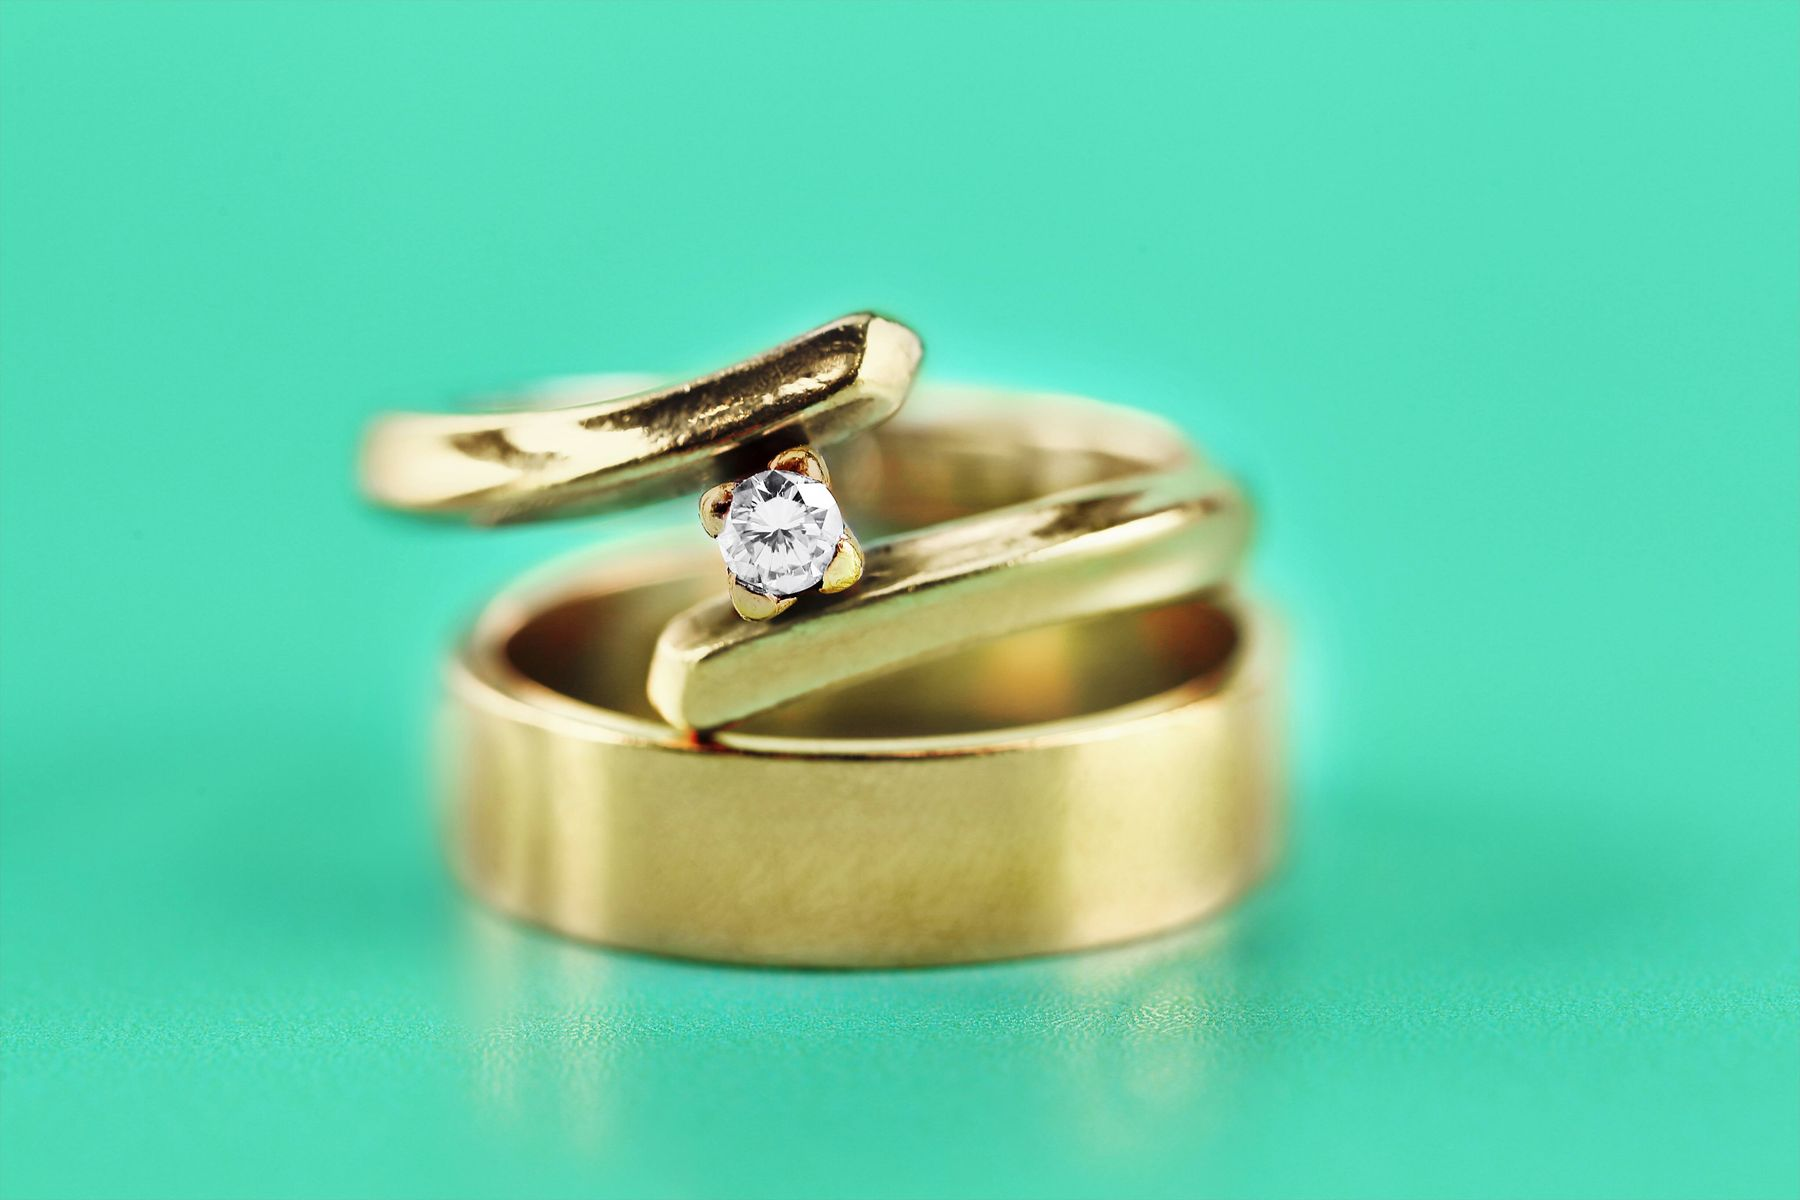 Gold diamond ring on a green background